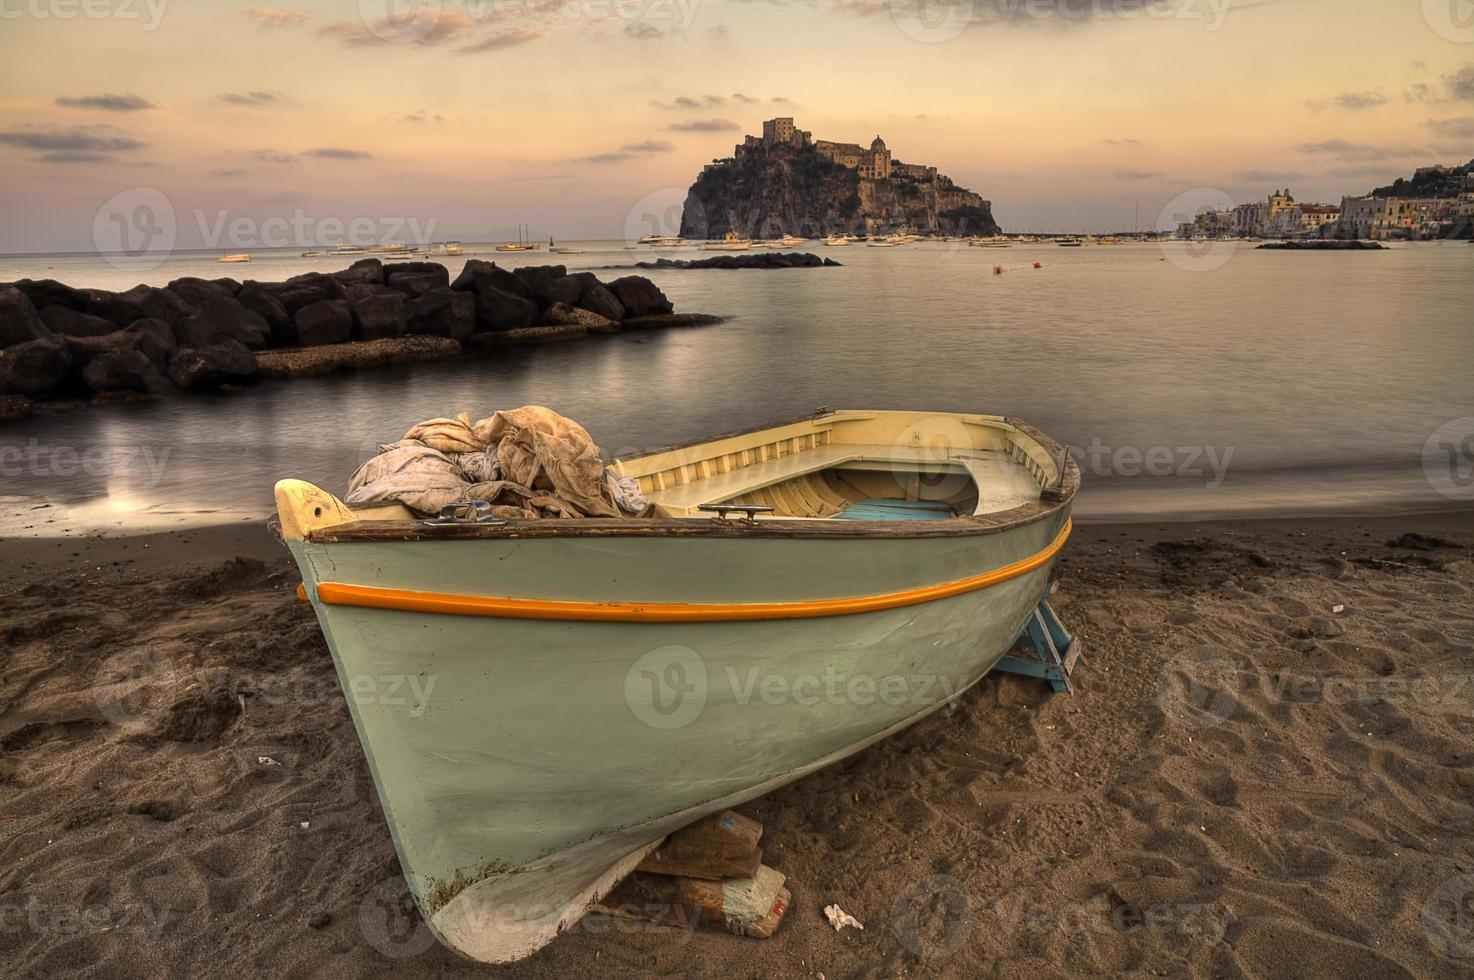 aragonese casle (ischia island) view beach old prison at sunset foto